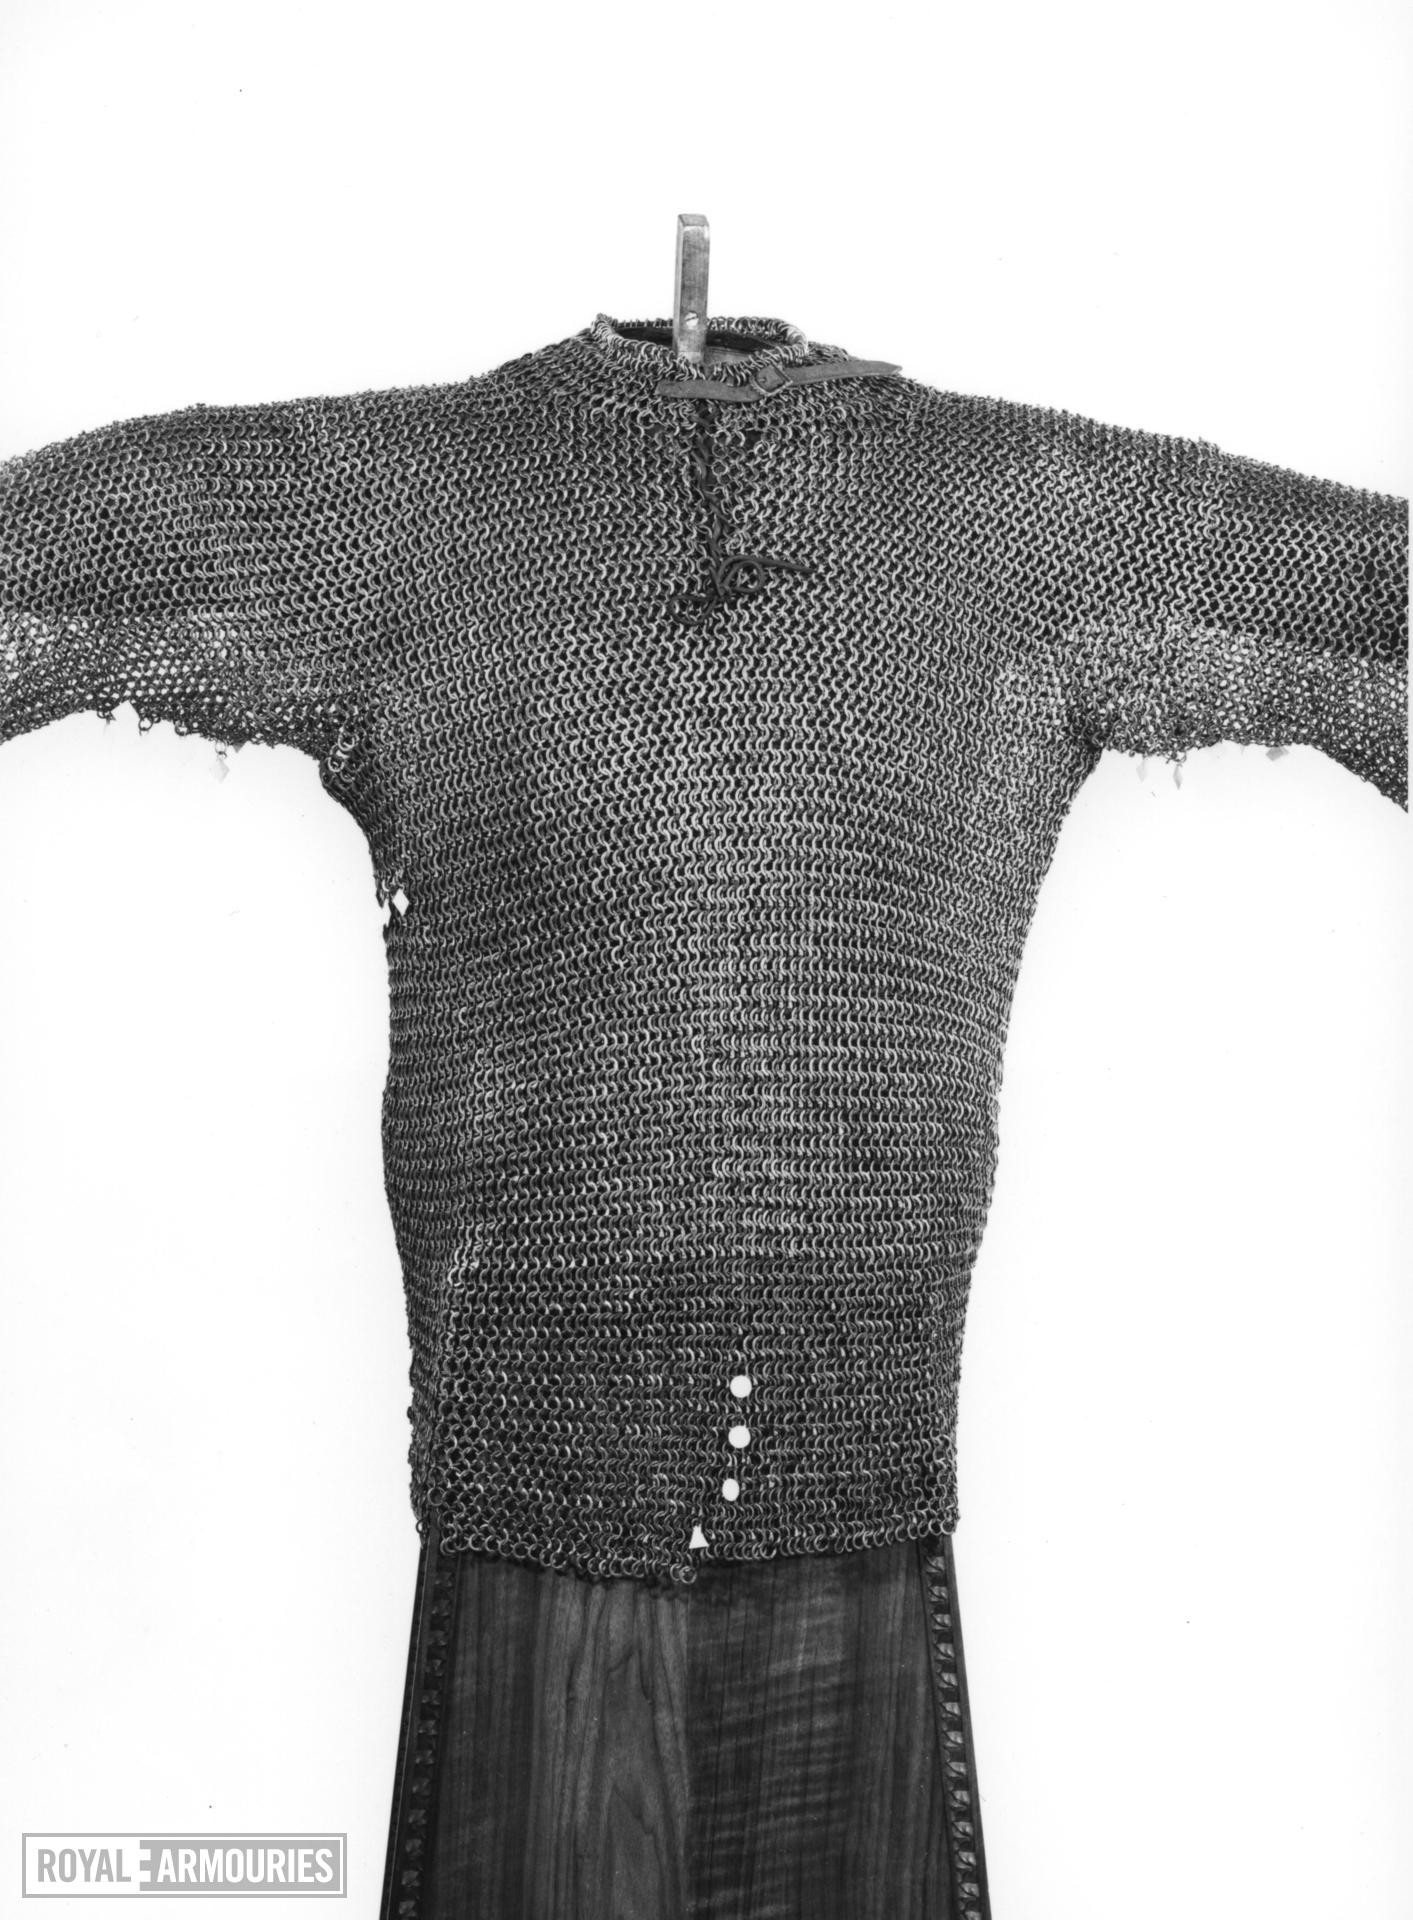 Mail shirt traditionally of Rudolph IV of Hapsburg, Duke of Austria, Carinthia and Ferrette (1339-1365). German, mid-14th century (III.1279)